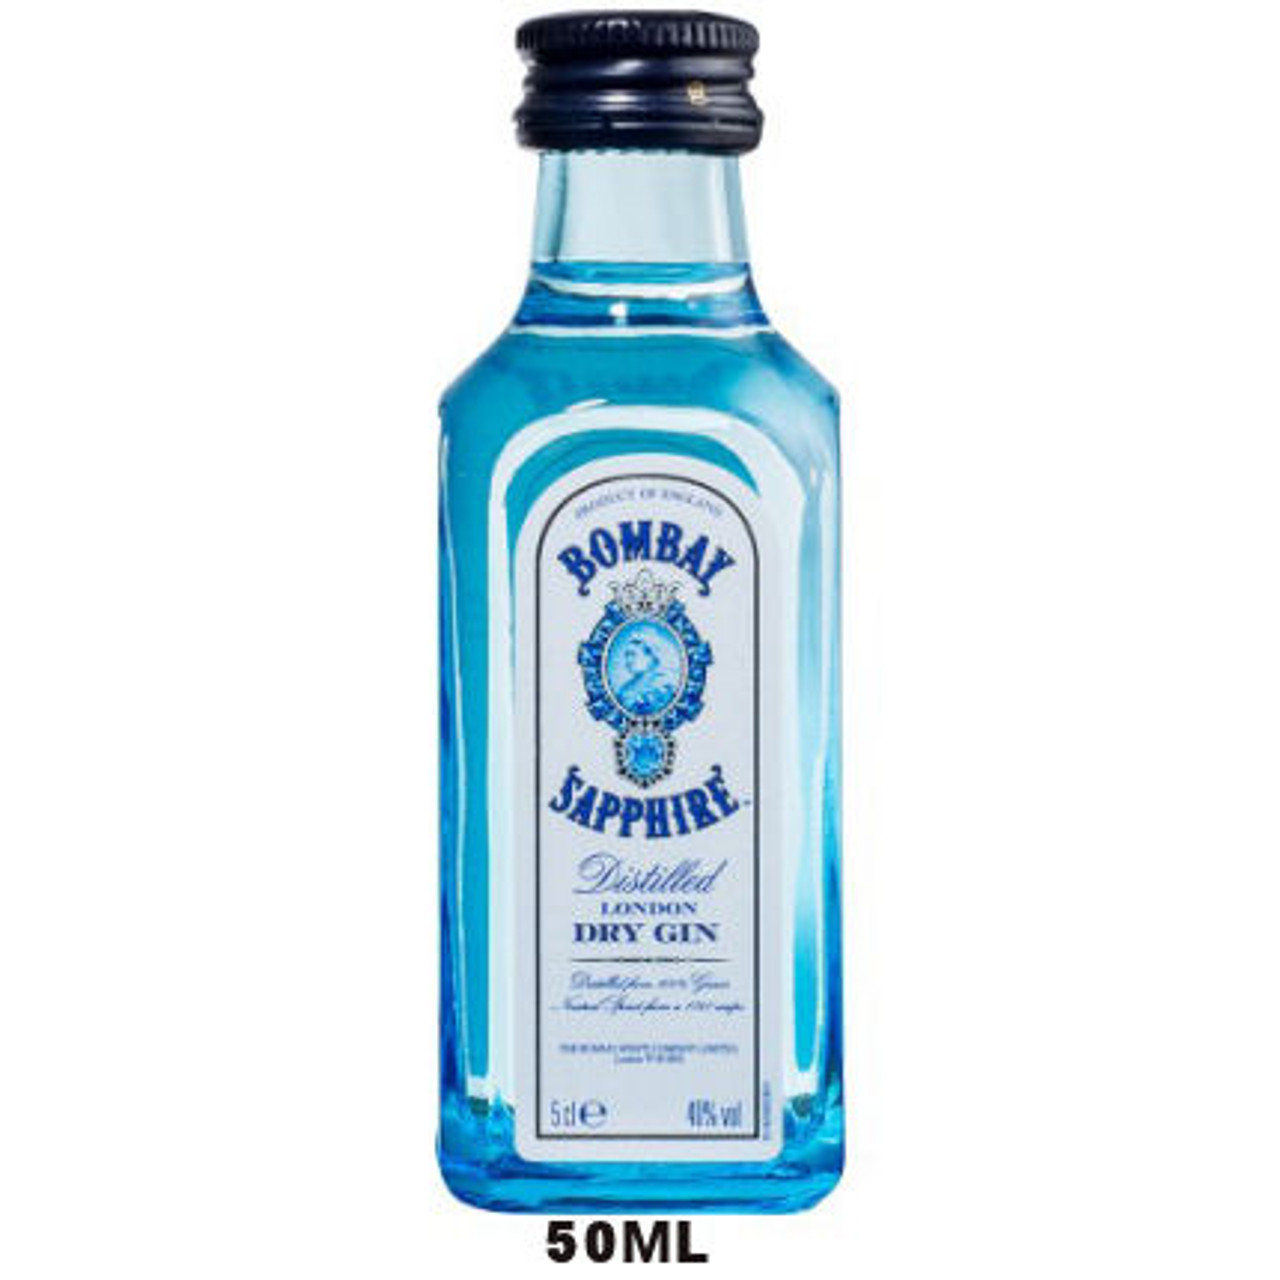 50ml Mini Bombay Sapphire London Dry Gin